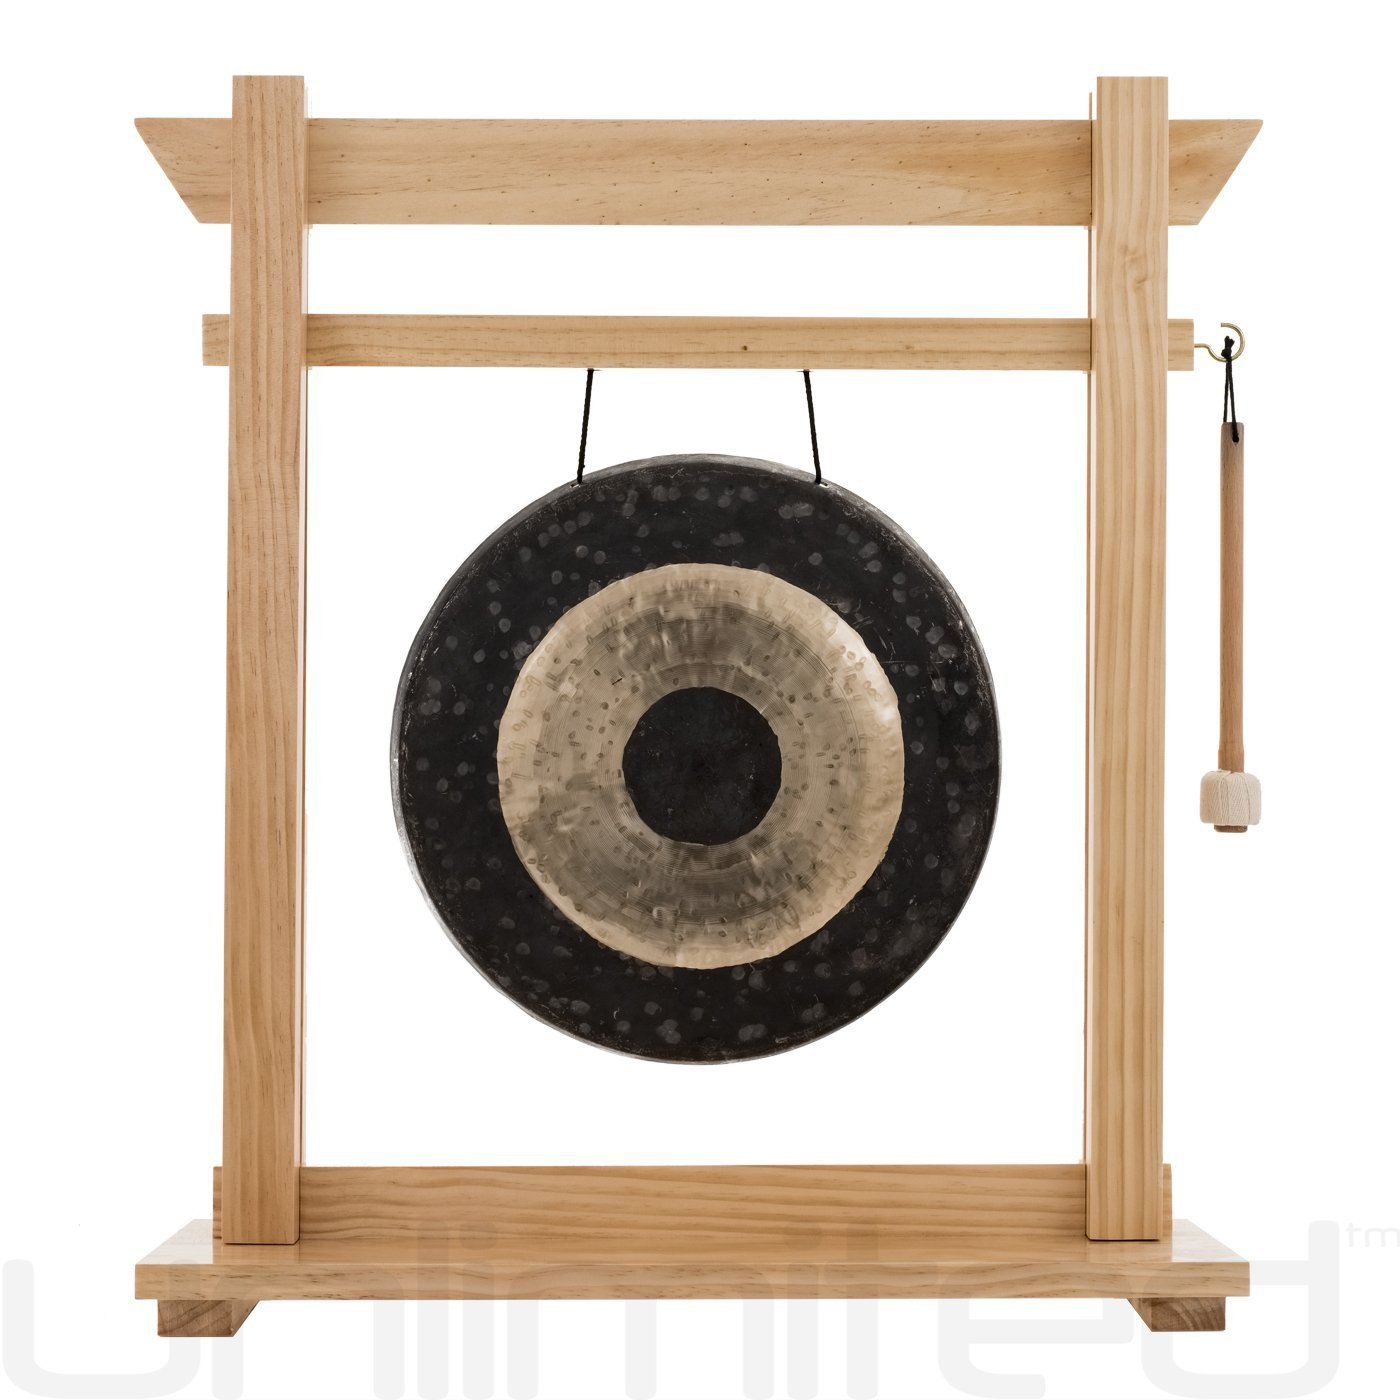 14'' Gongs on the Moksha Joe Gong Stand - Pine